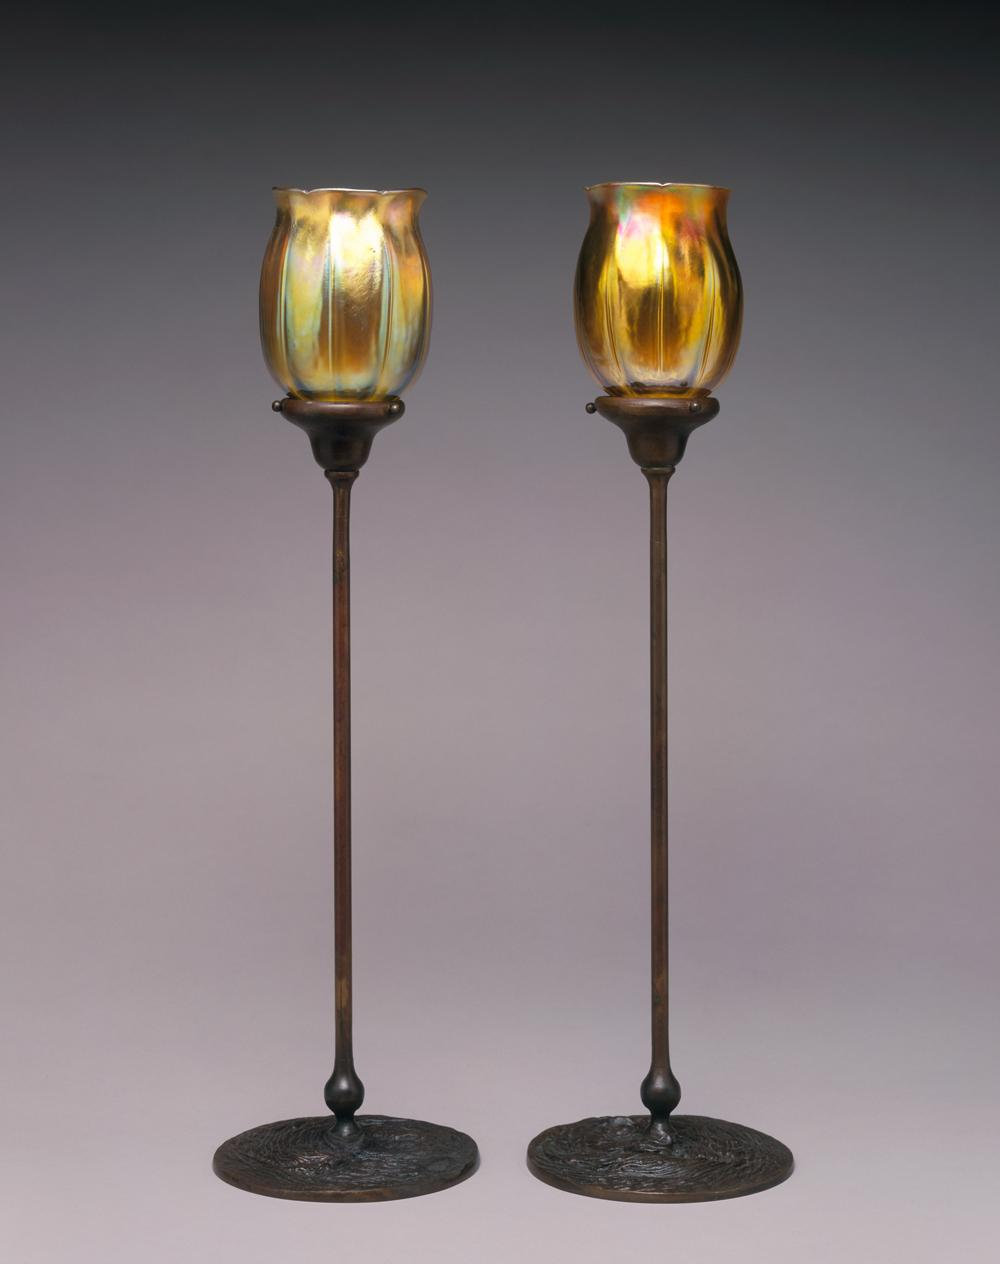 Louis Comfort Tiffany, Favrile Candle Lamps, 1982-16-6_7. Iridescent glass, hand-wrought bronze. Gift of Willis N. and Louis Bruce 1982-16-6, 1982-16-7